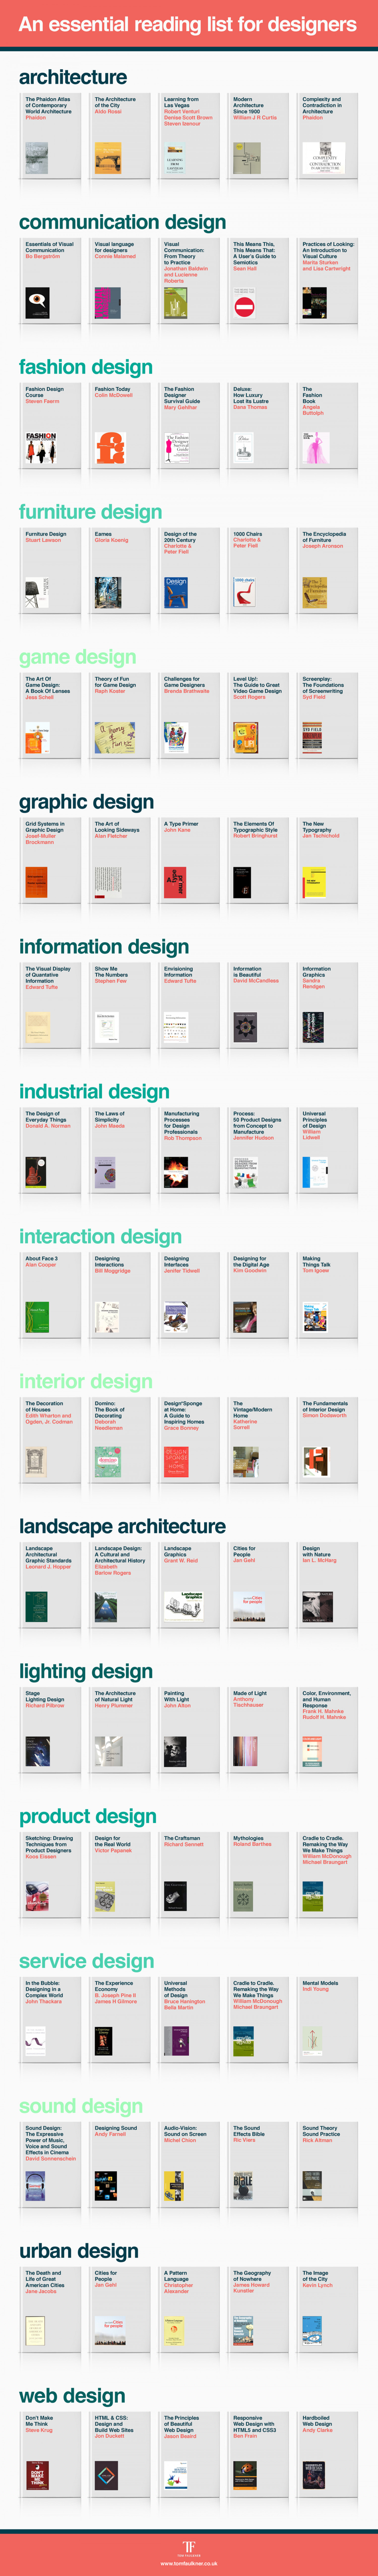 An Essential Reading List for Designers Infographic